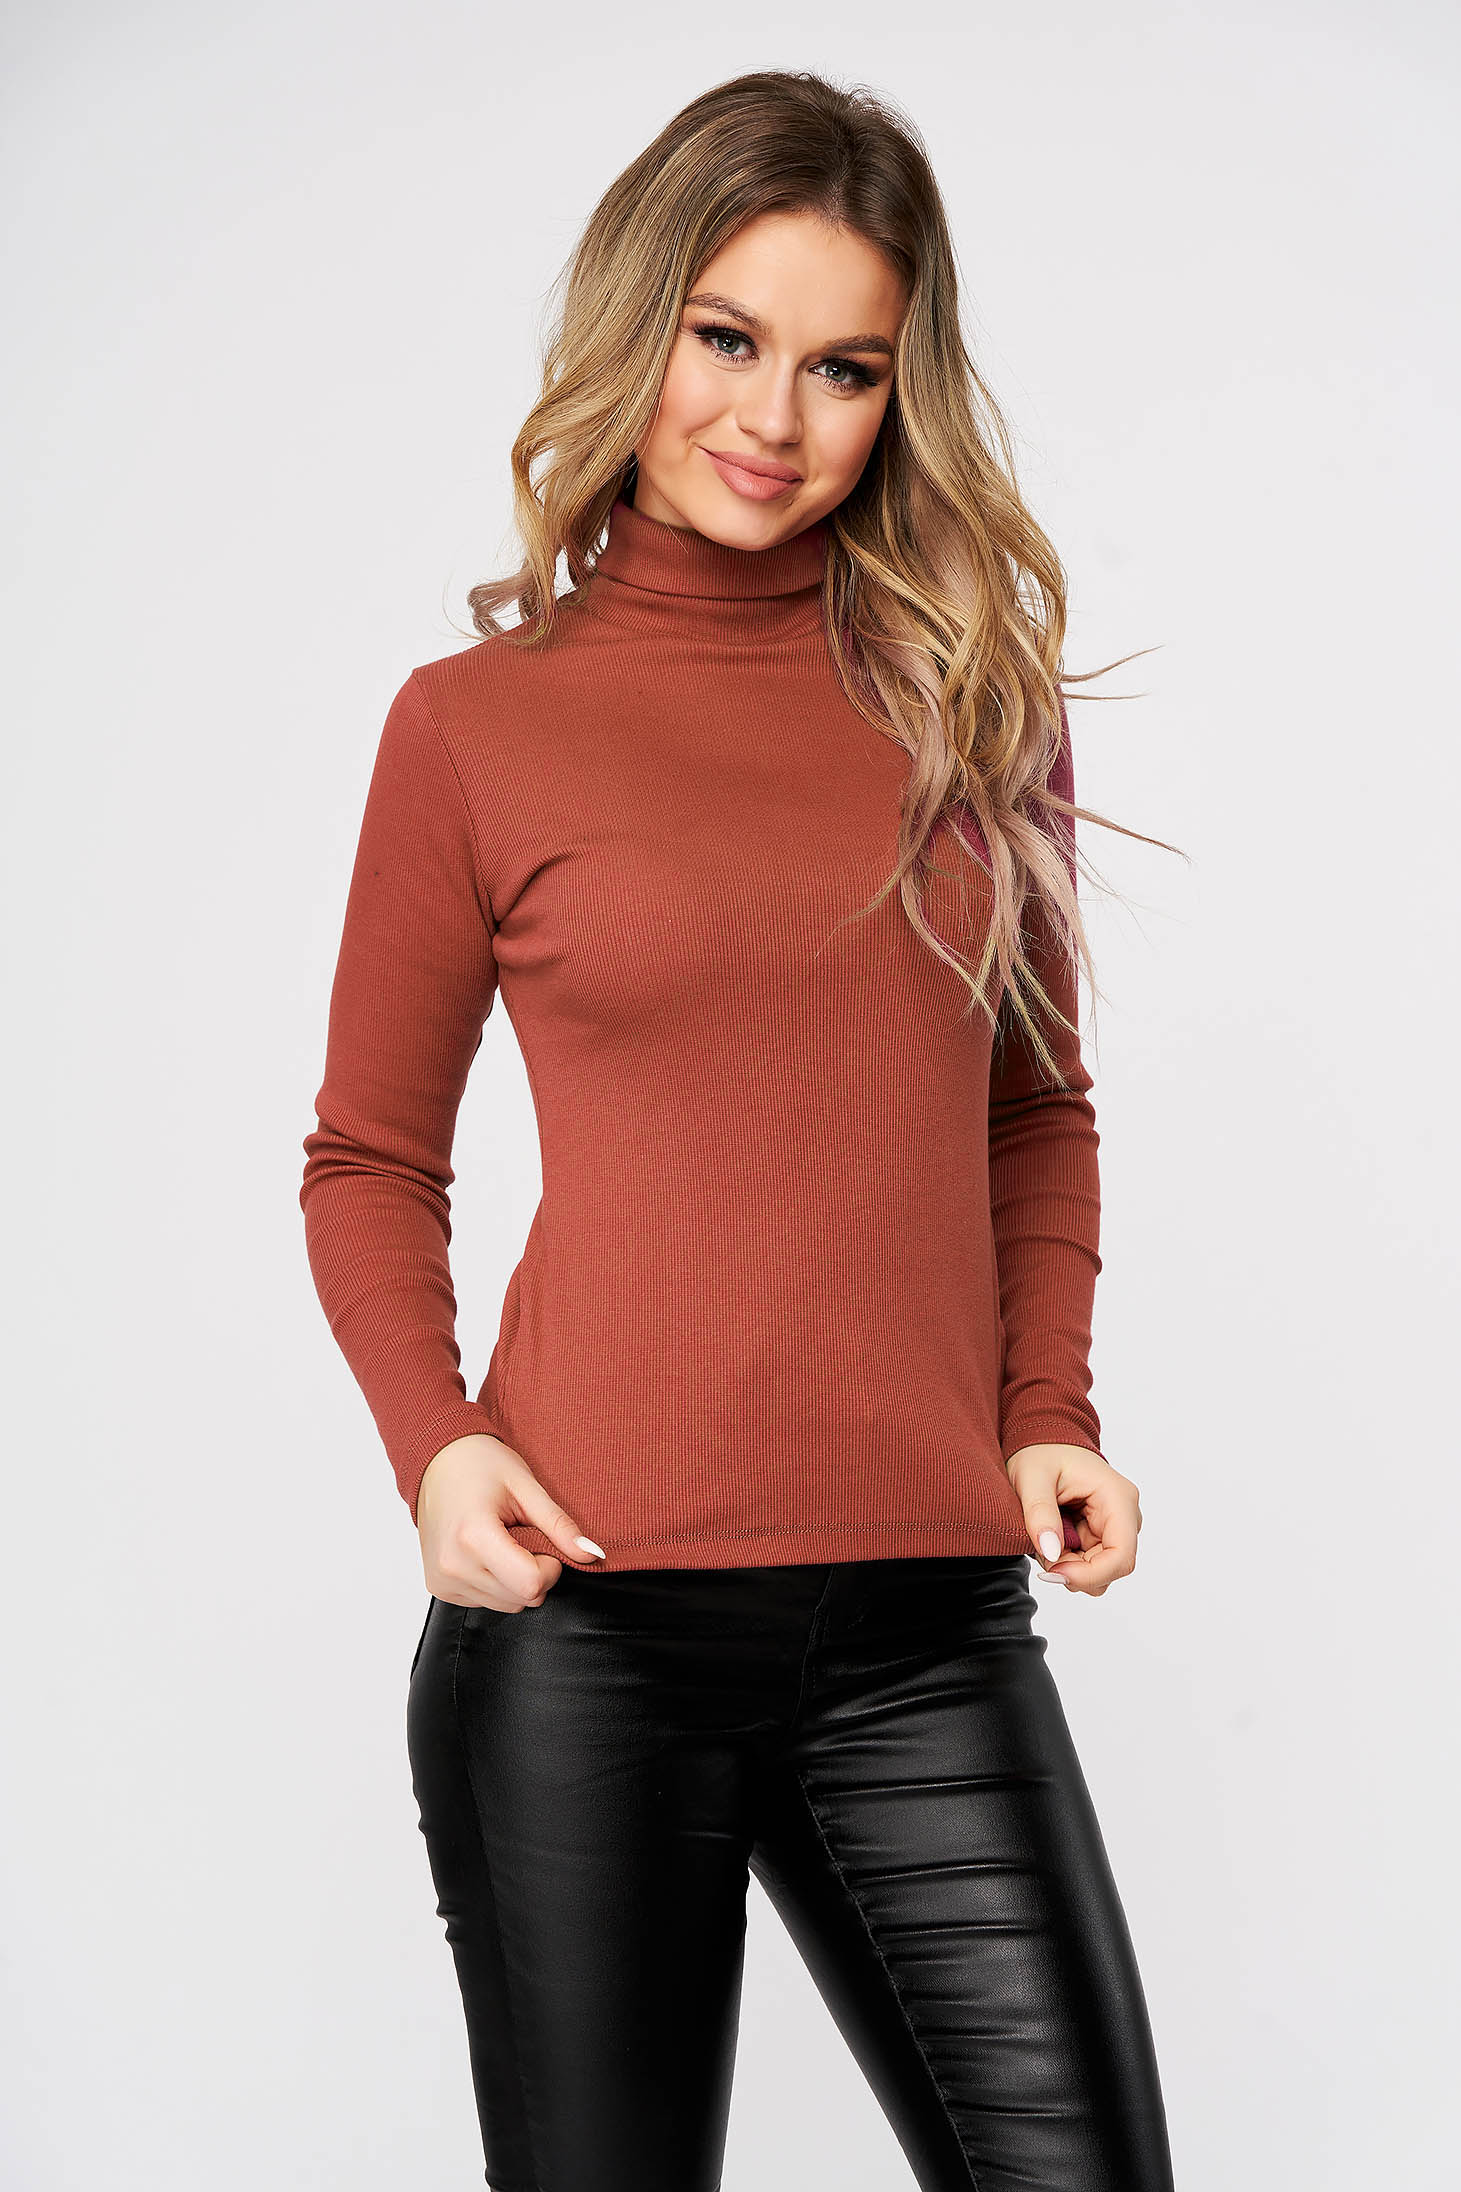 Bricky women`s blouse slightly elastic cotton turtleneck from striped fabric form-fitting casual